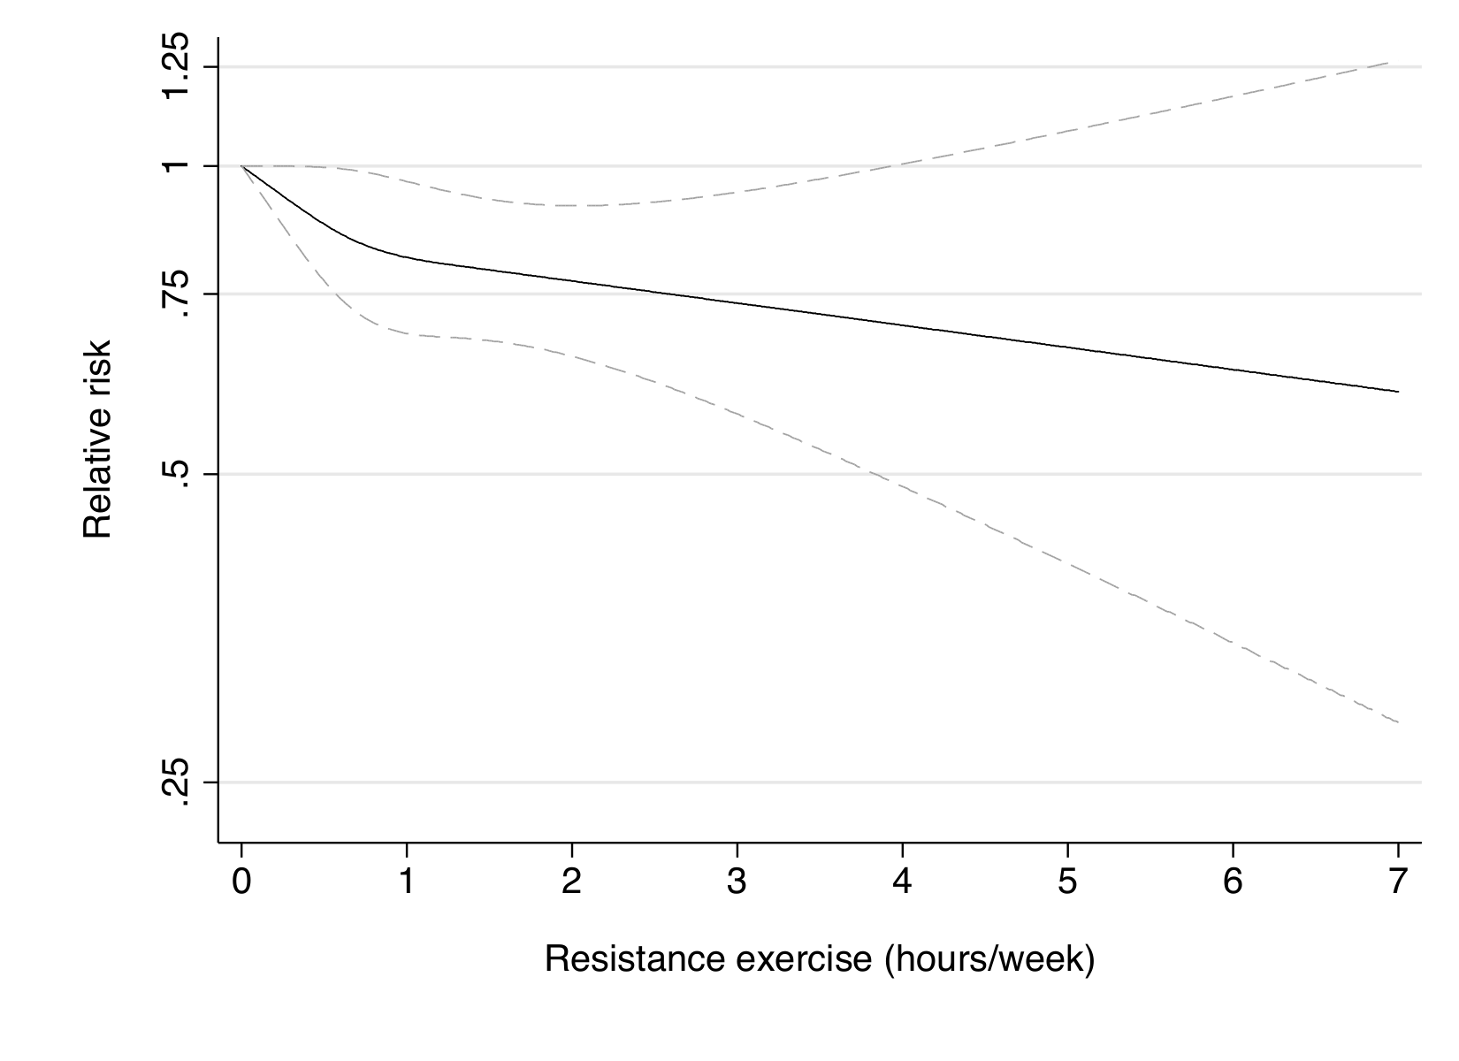 Dose-response relationship between resistance exercise (hours/week) and risk of type 2 diabetes in women from the Nurses' Health Study.